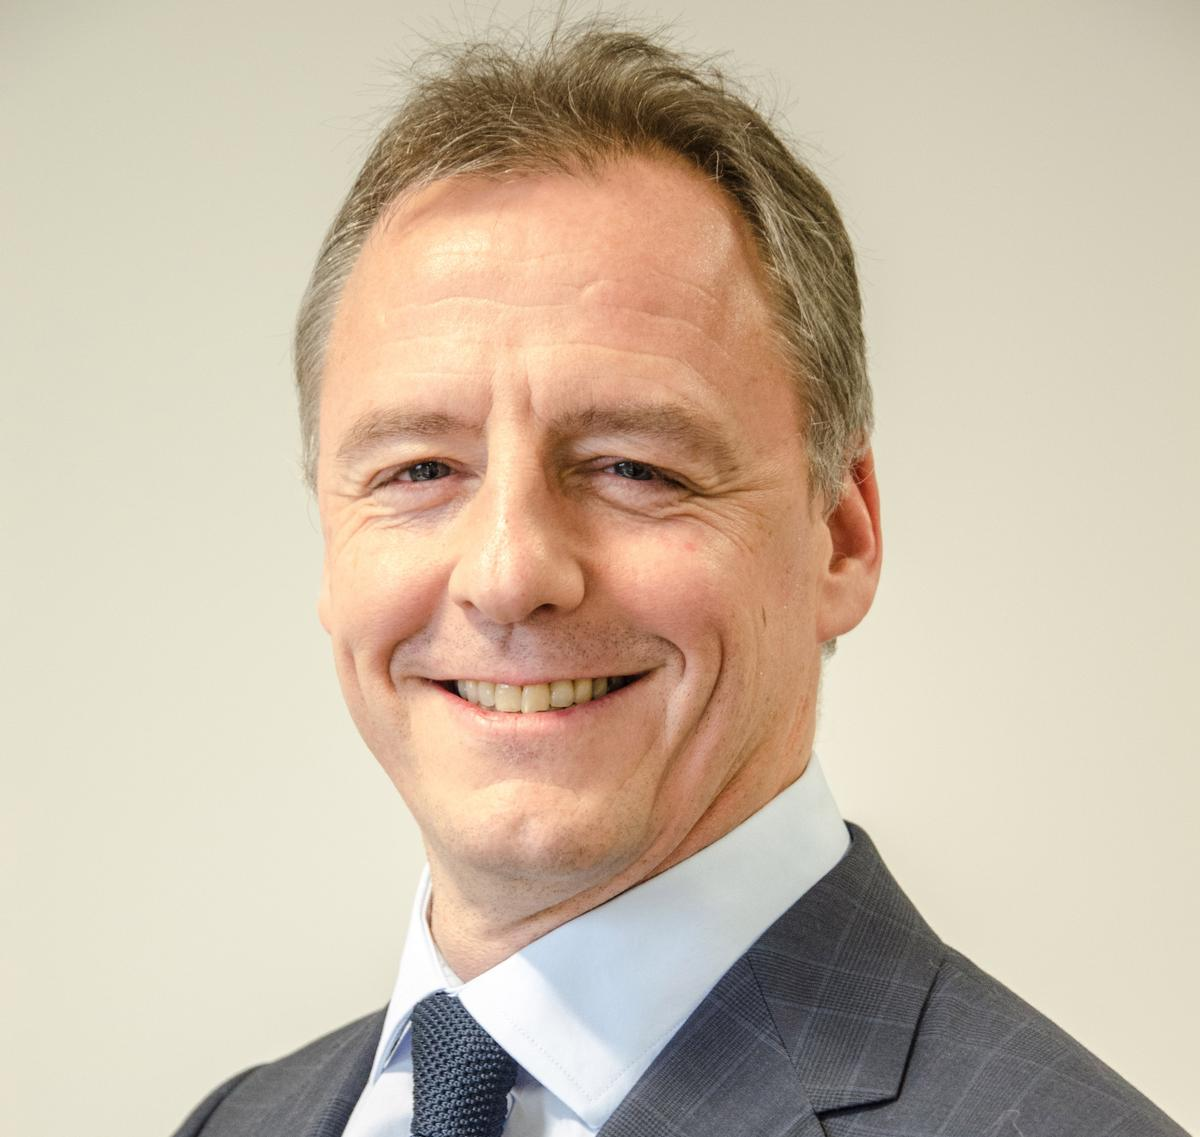 1Life managing director Neil King says leisure providers need a 'joined-up approach'